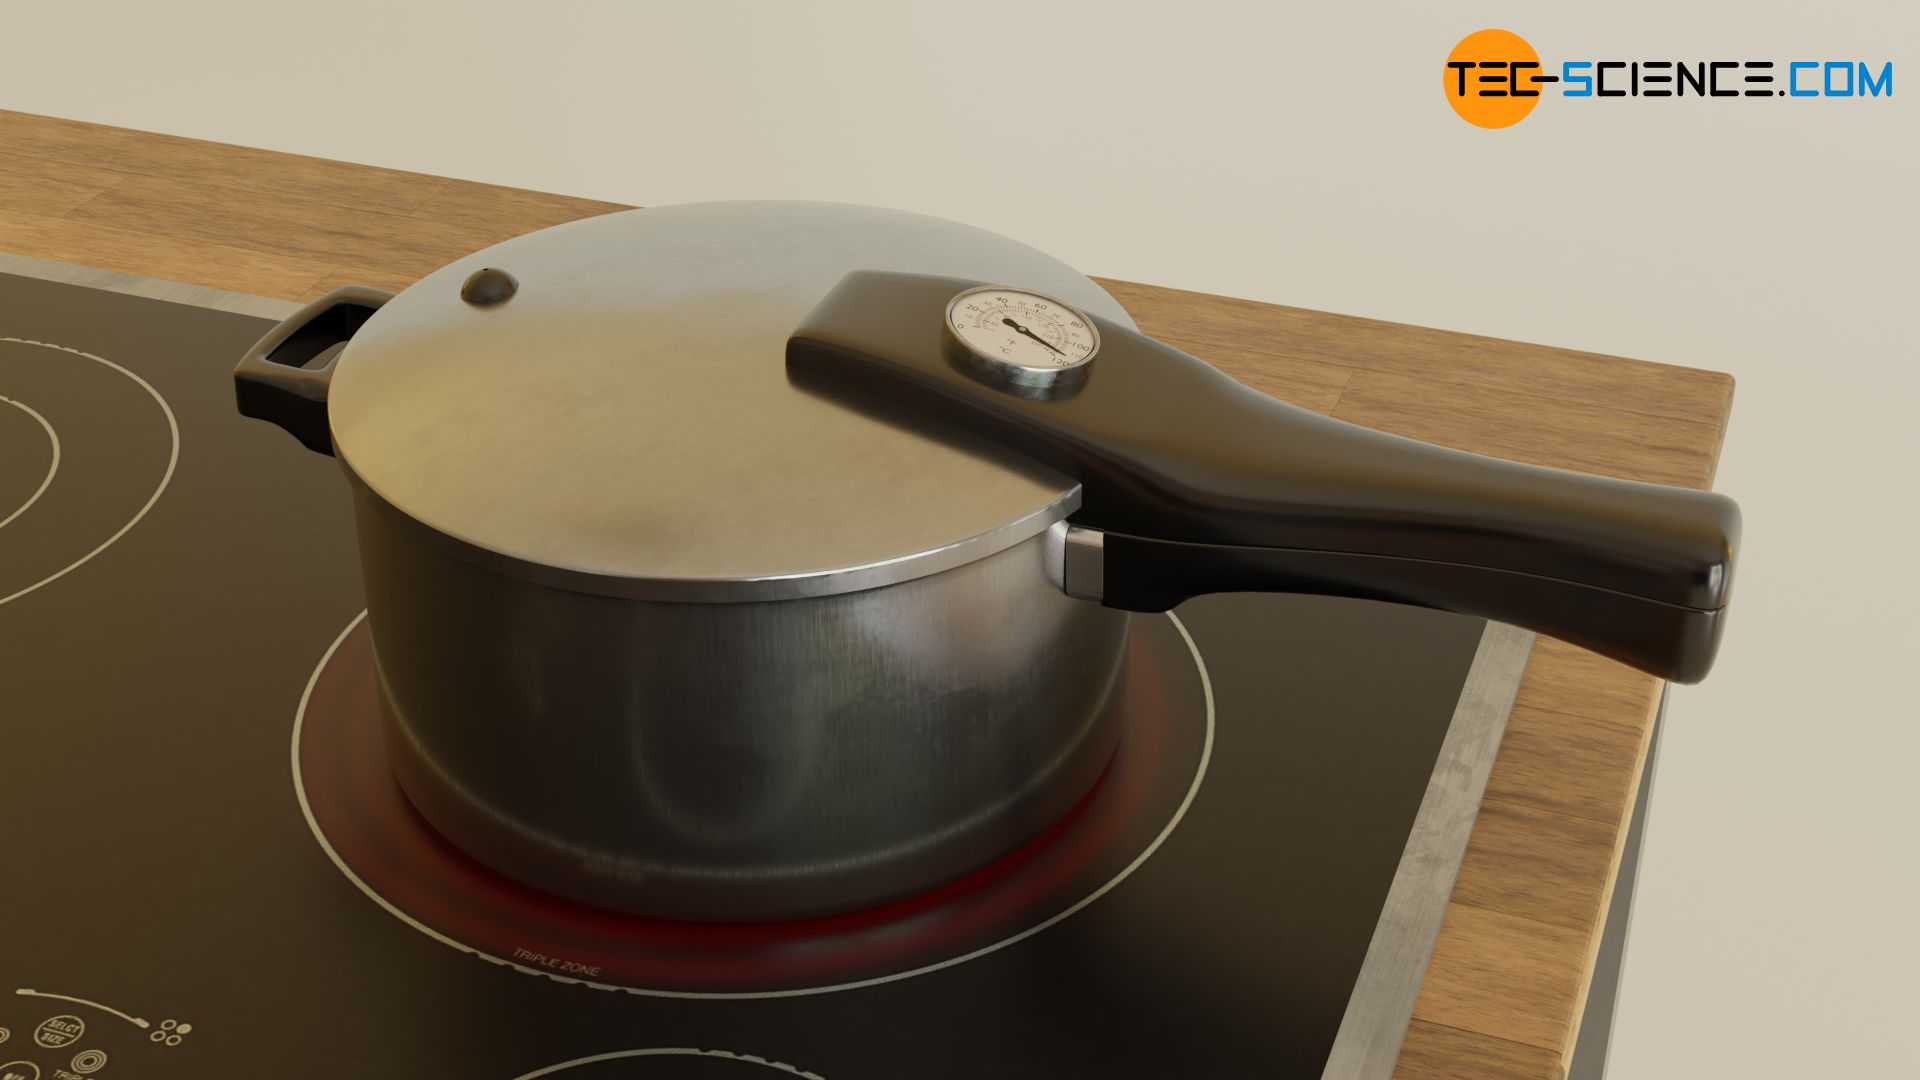 Increasing the boiling temperature in a pressure cooker